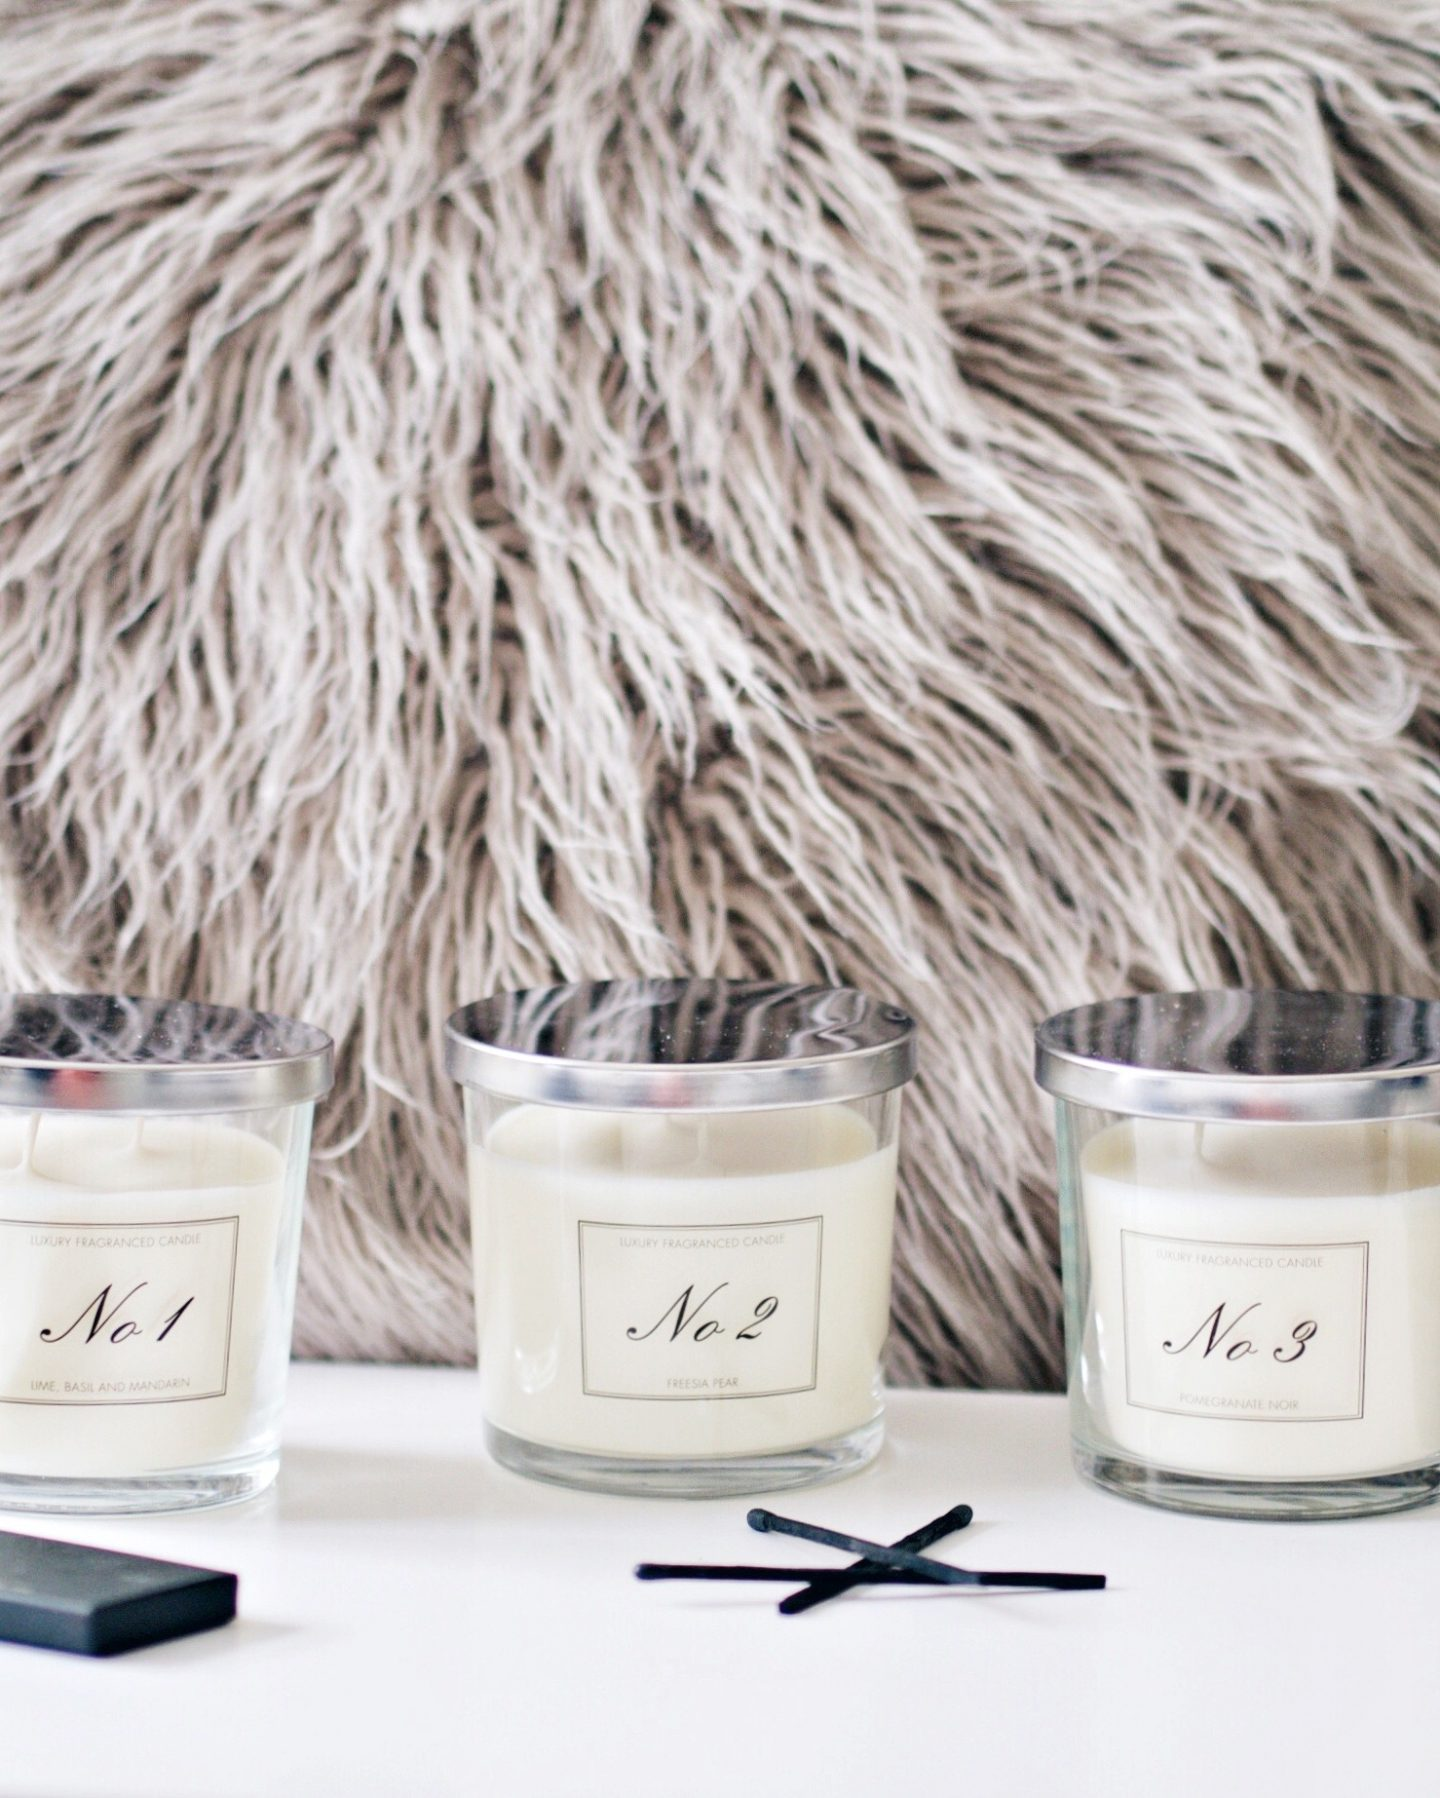 Jo Malone Candle Dupes